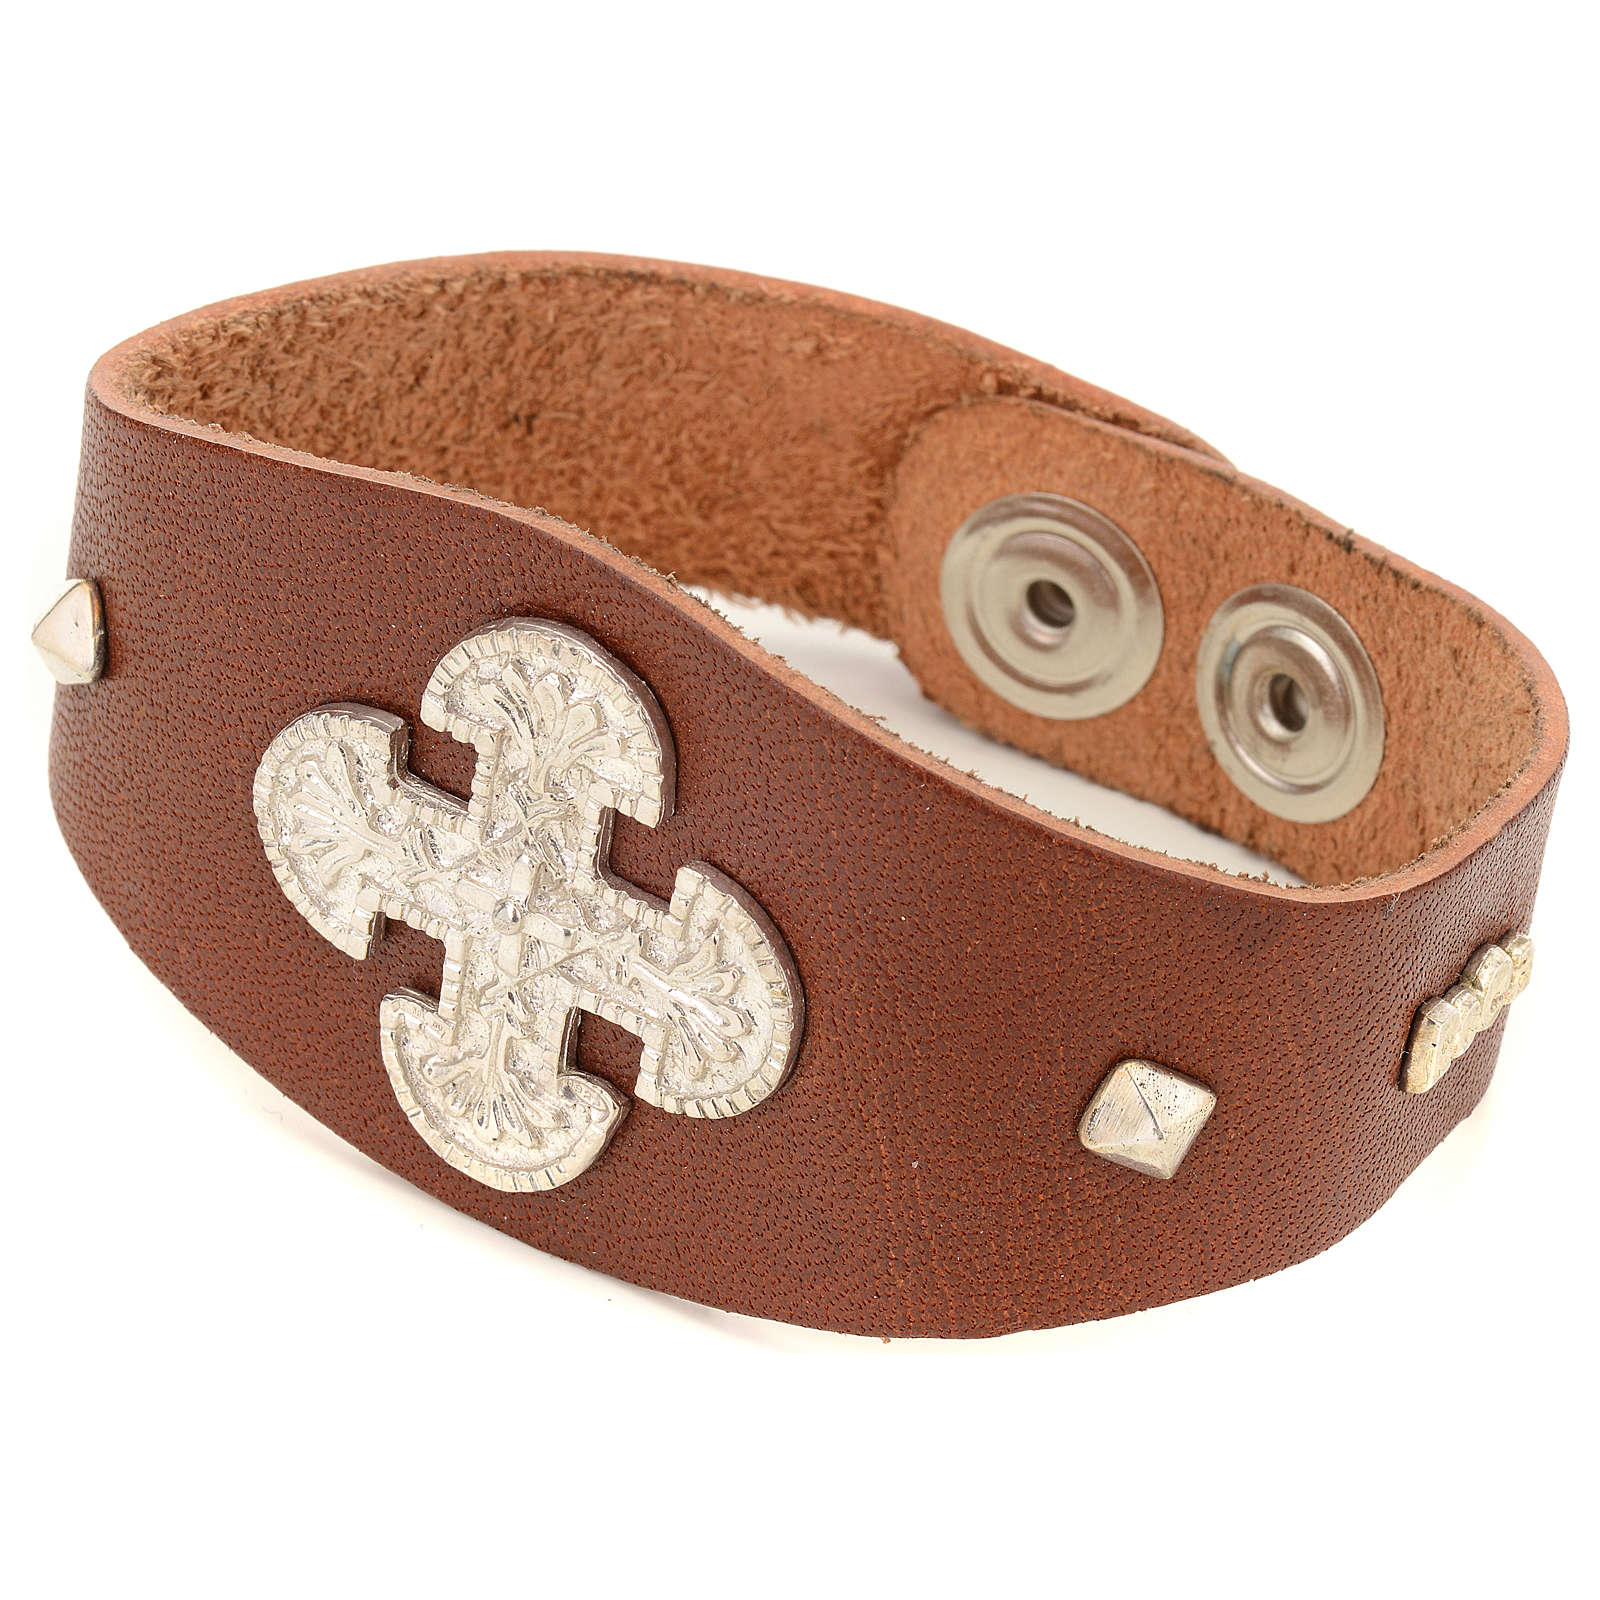 Bracelet in brown leather with decorations in sterling silver 4